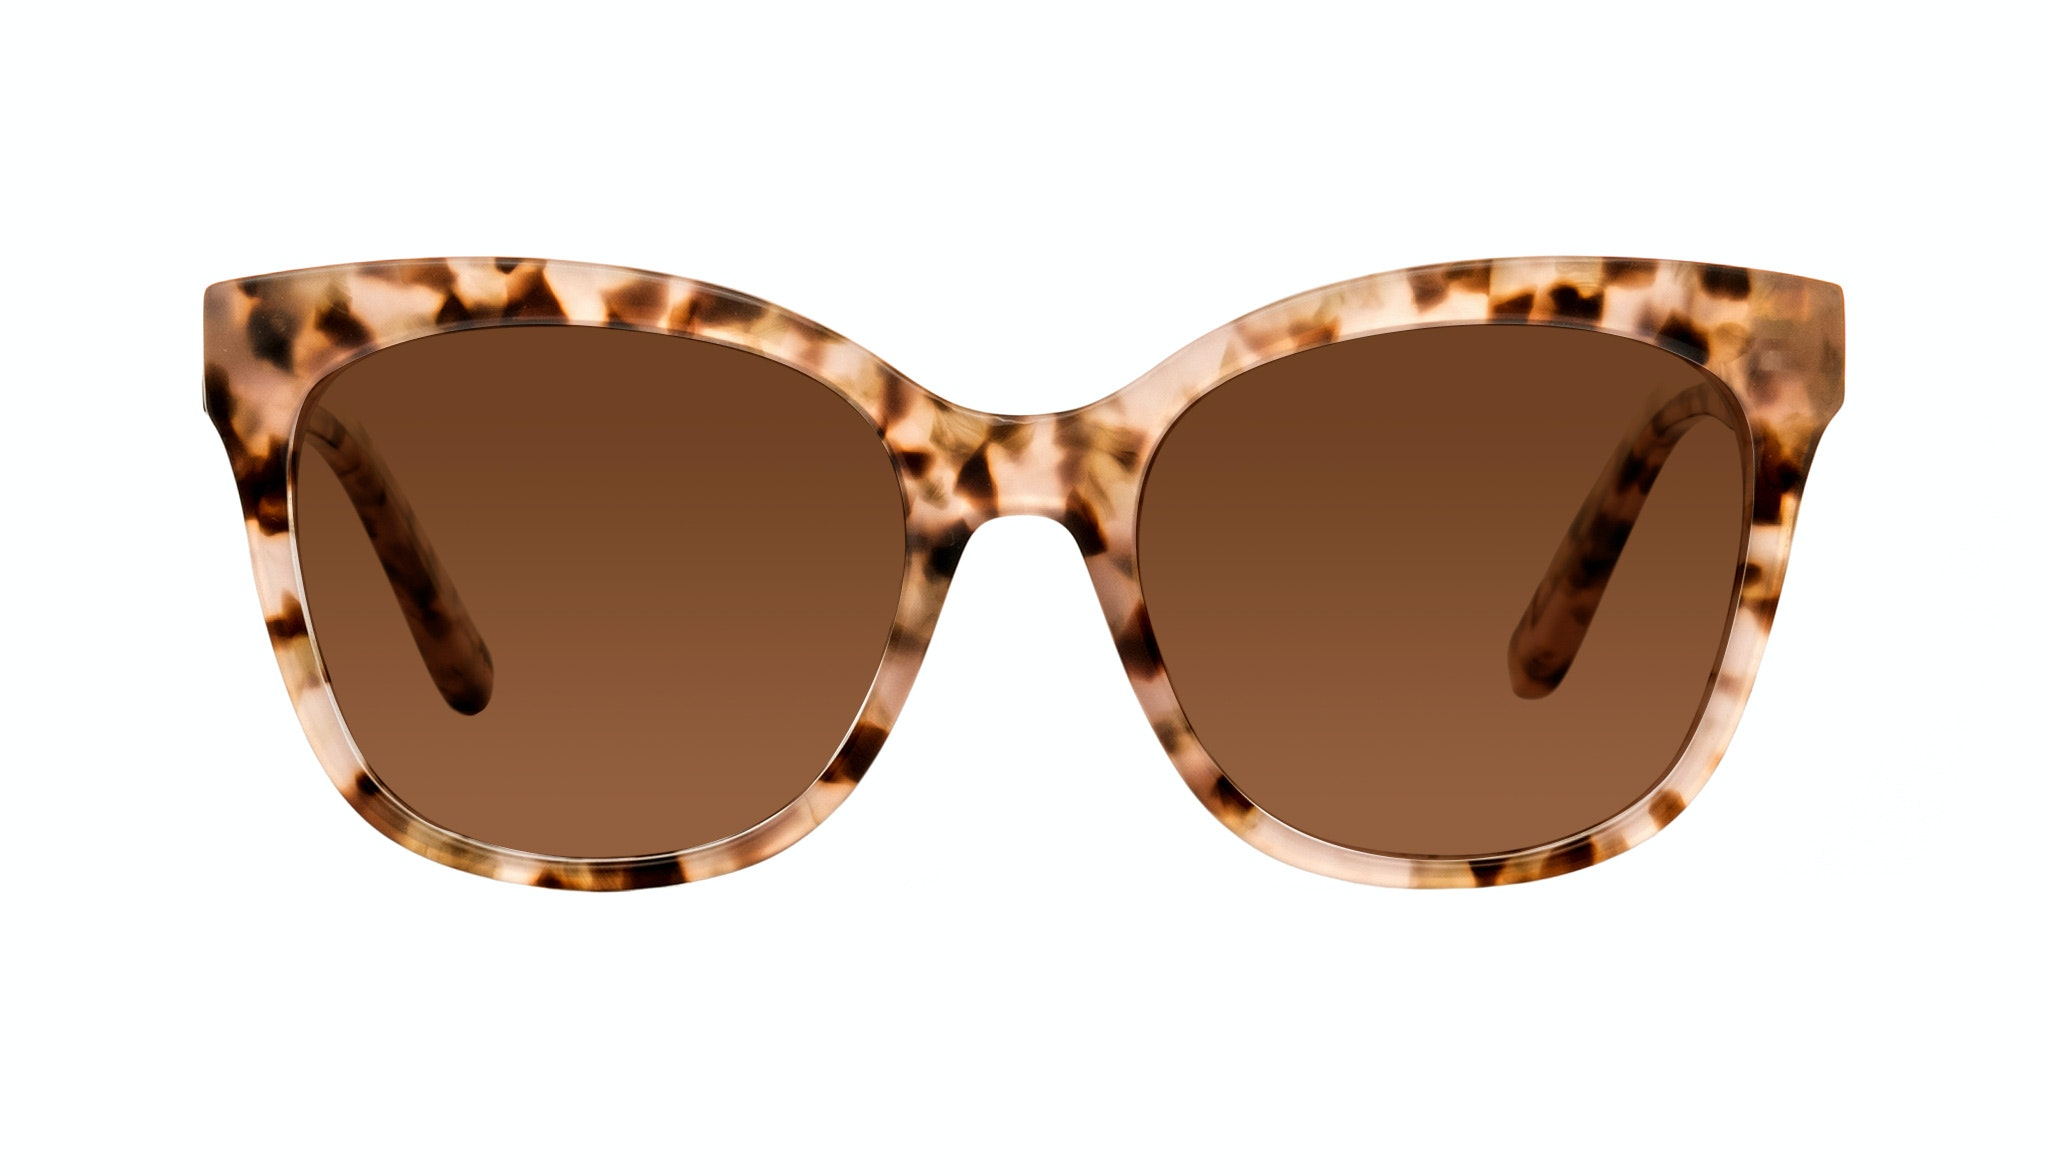 Affordable Fashion Glasses Square Sunglasses Women Breezy Pink Leopard